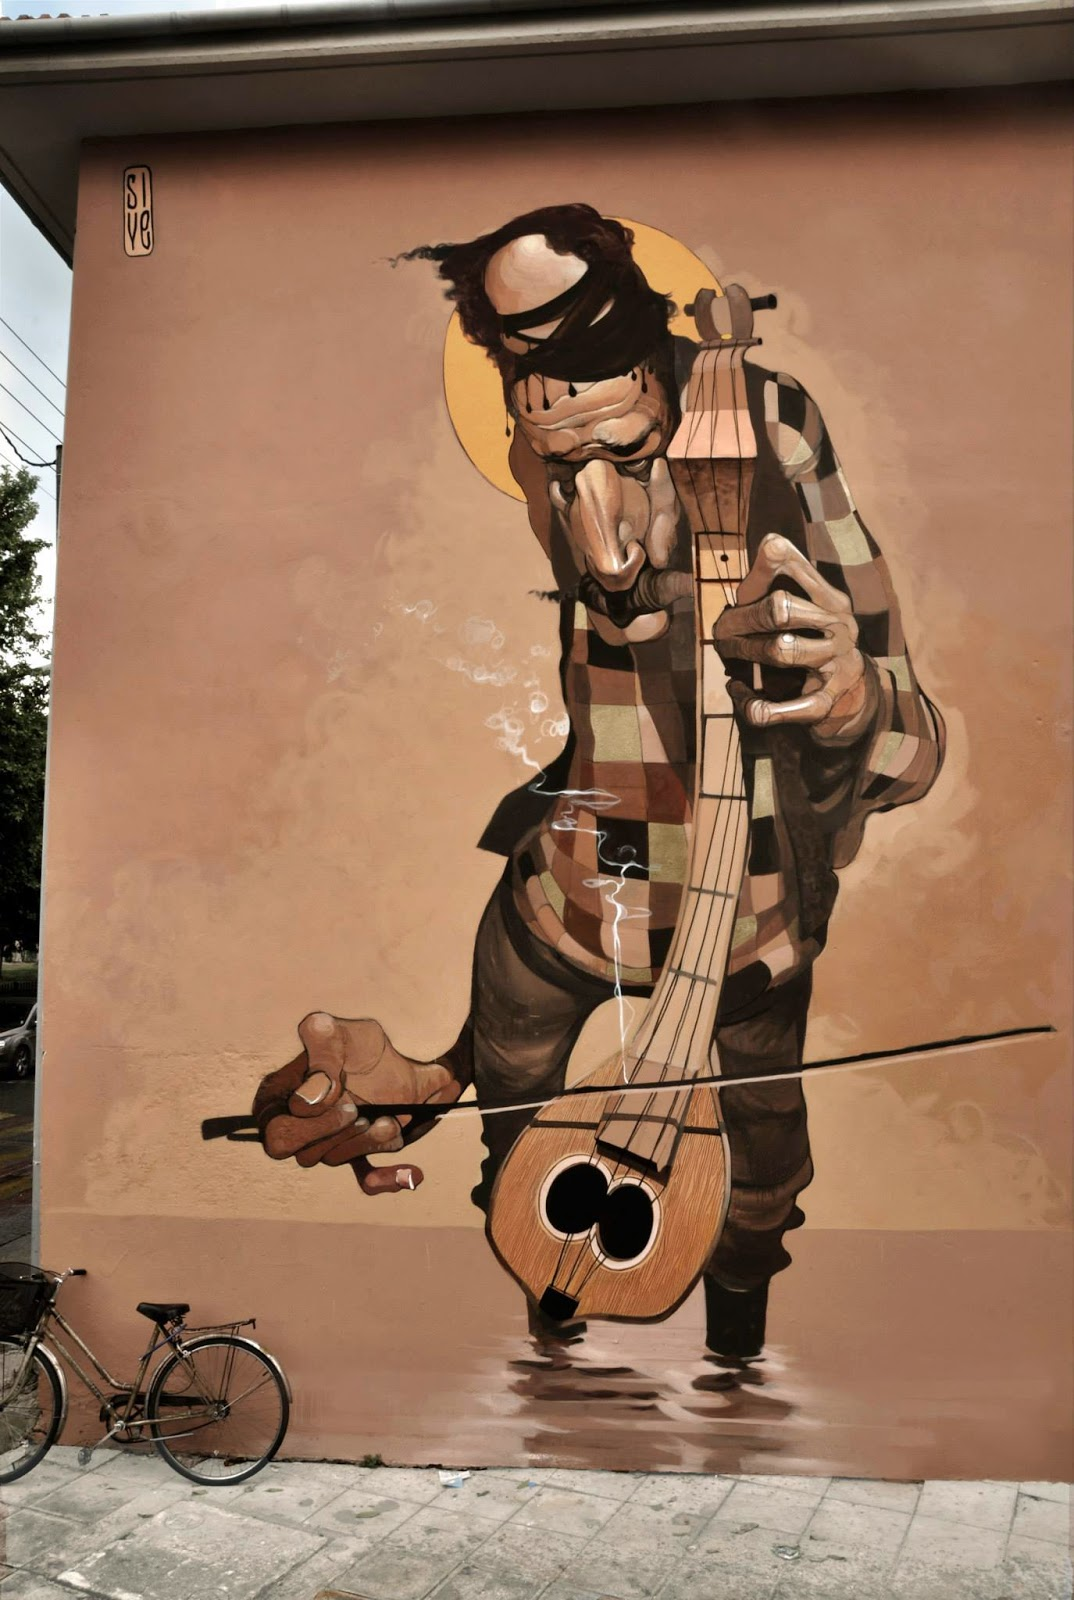 Stamatis Laskos recently spent a few days working on this massive piece somewhere on the streets of Volos, a coastal port city in Thessaly situated midway on the Greek mainland.